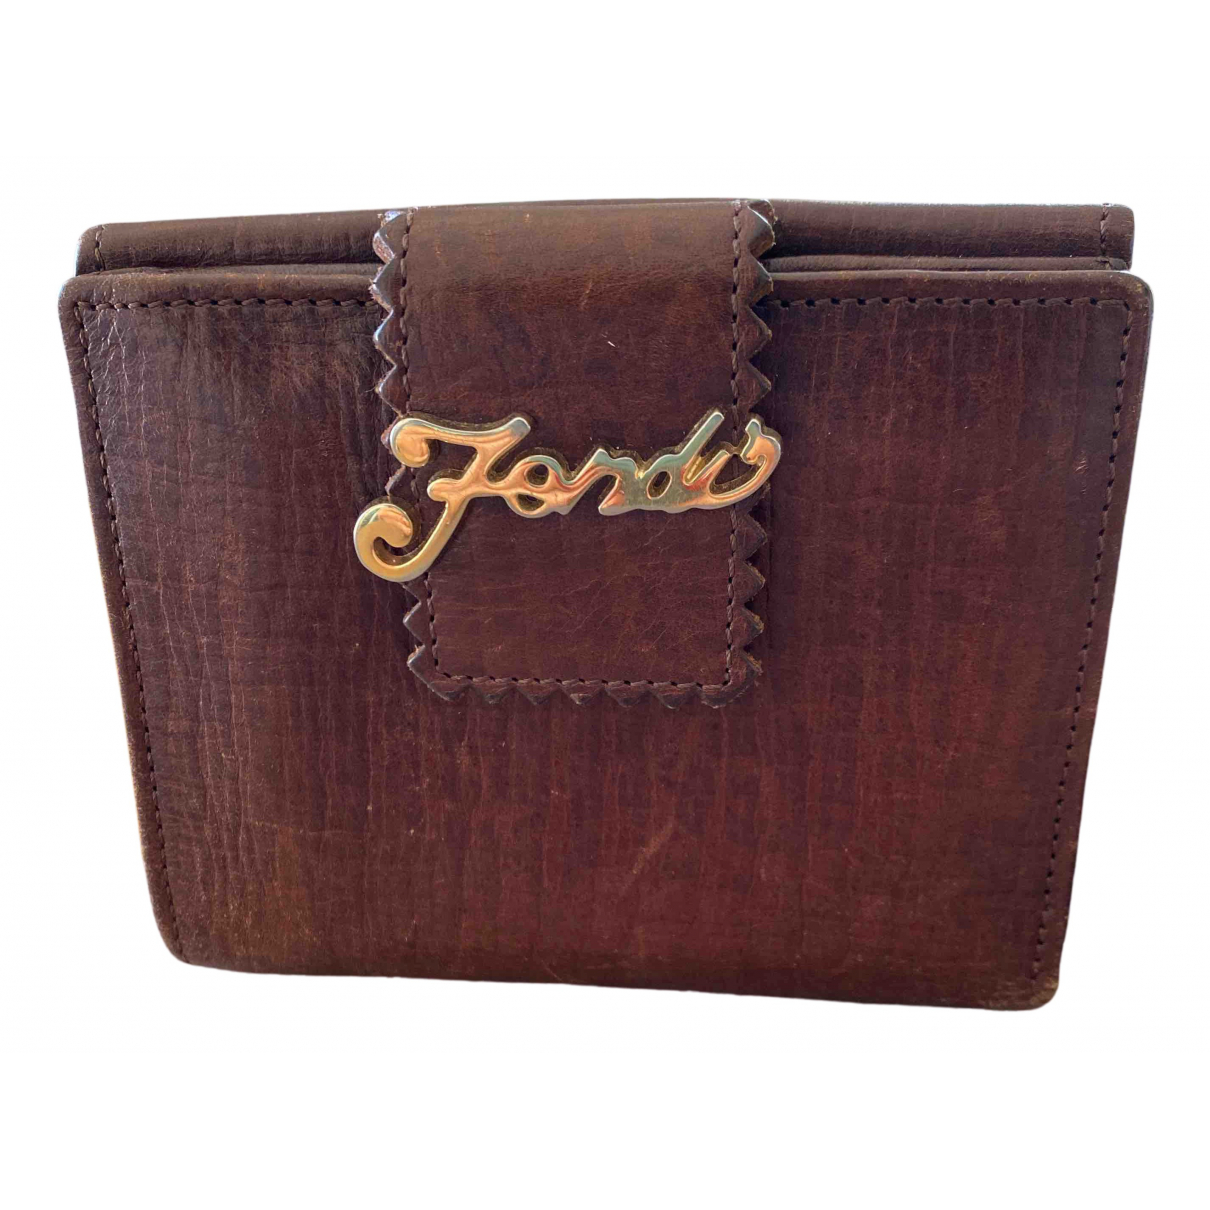 Fendi N Brown Leather wallet for Women N